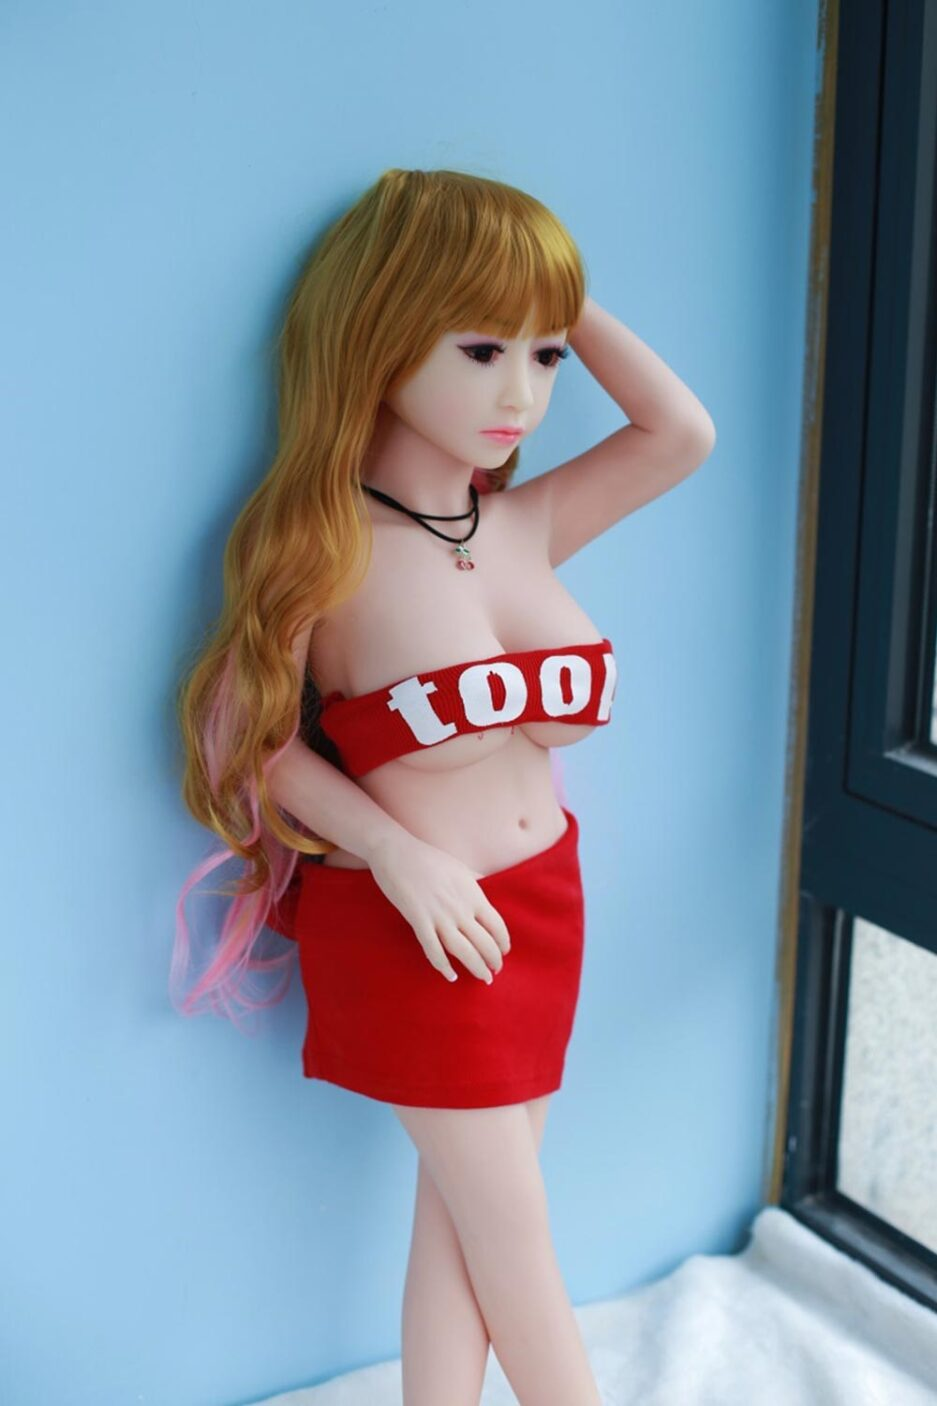 sex-doll-in-the-middle-of-her-head